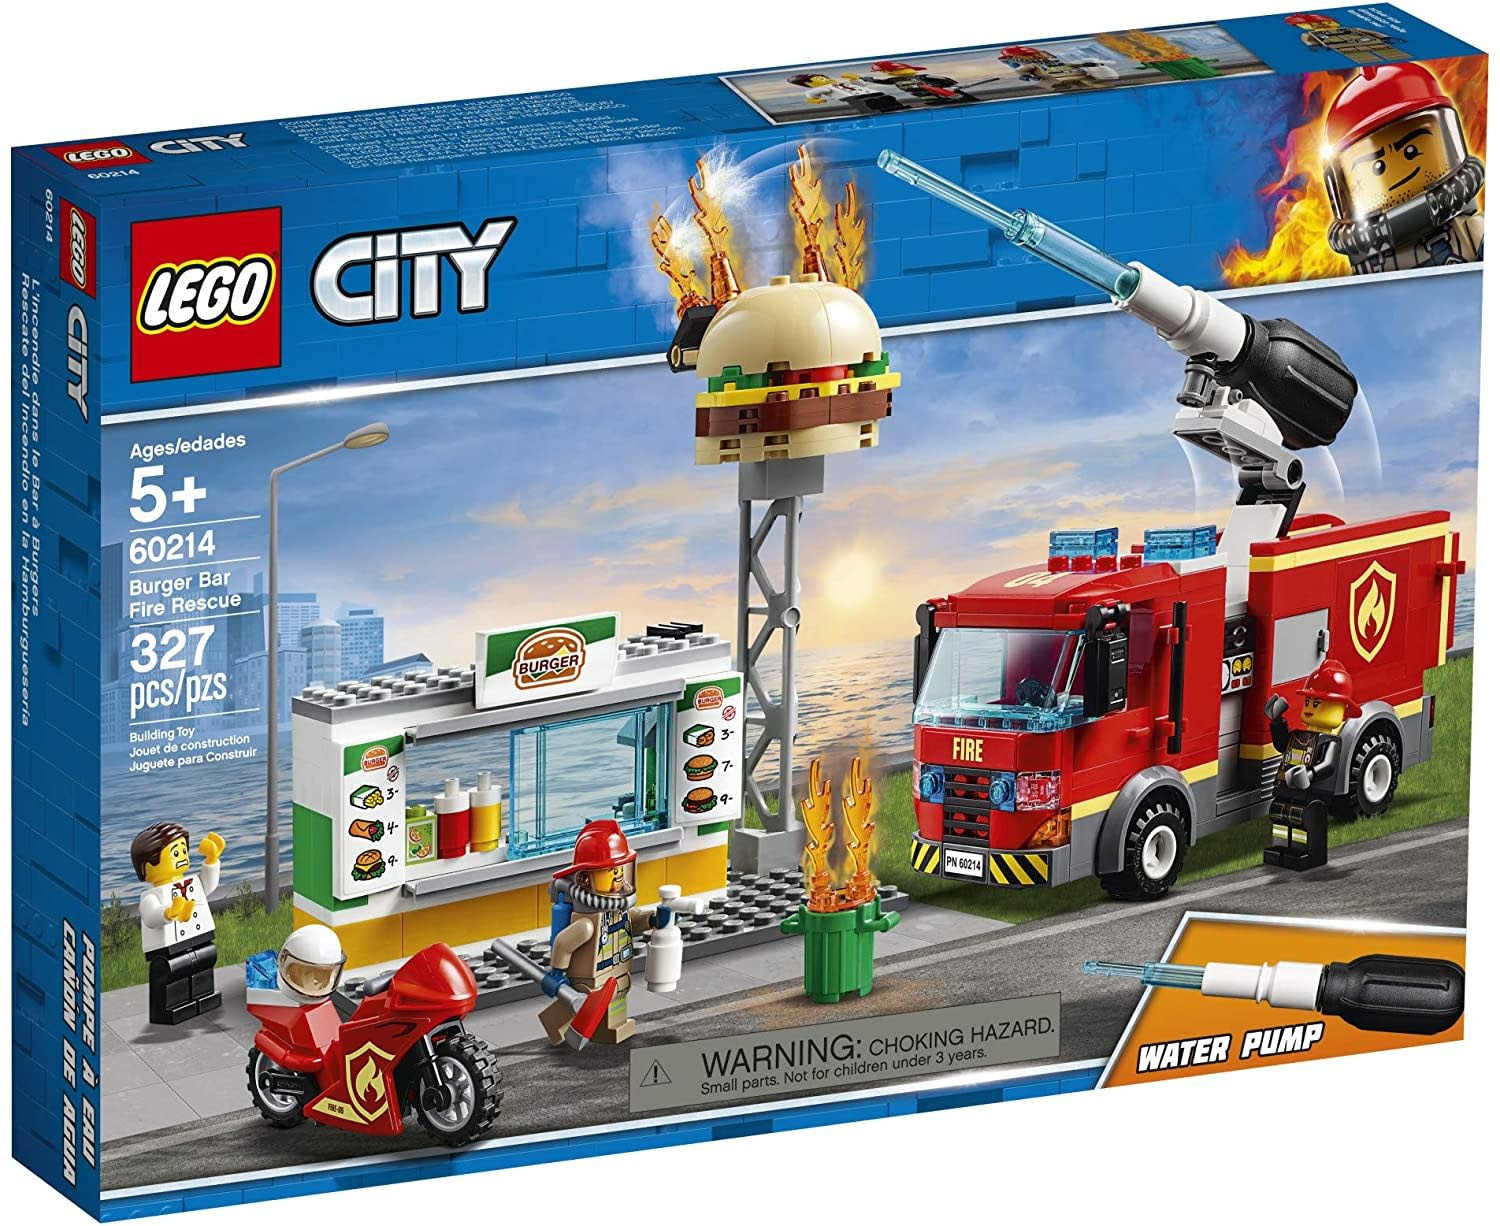 60214 Burger Bar Fire Rescue by LEGO City